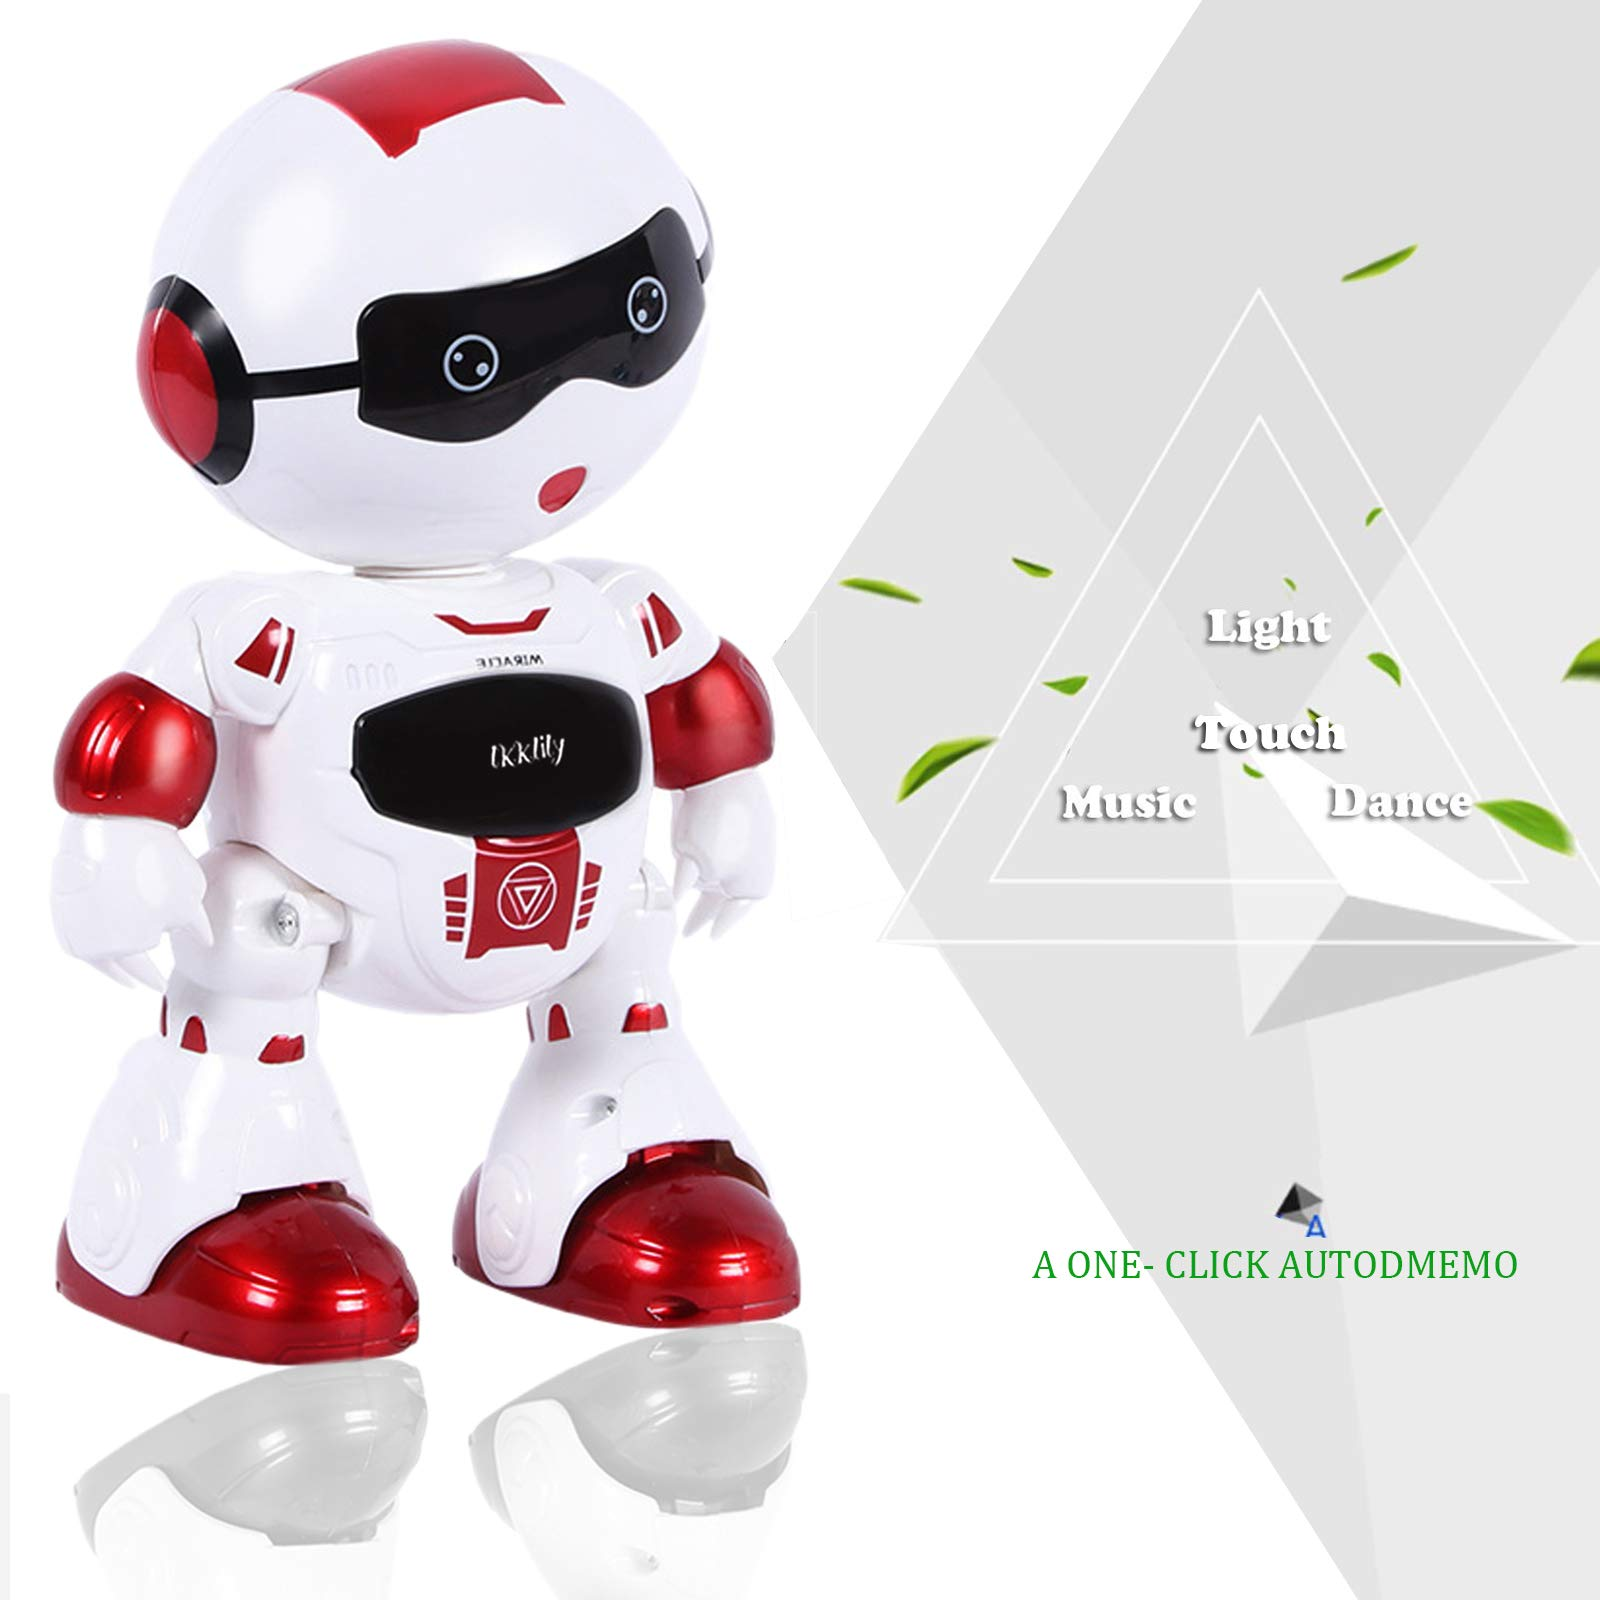 LKKLILY Remote Control Robot with Touch Interaction Music Dance and Lights Remote Toy for Children Kids and Kids Gifts (Red) by LKKLILY (Image #4)